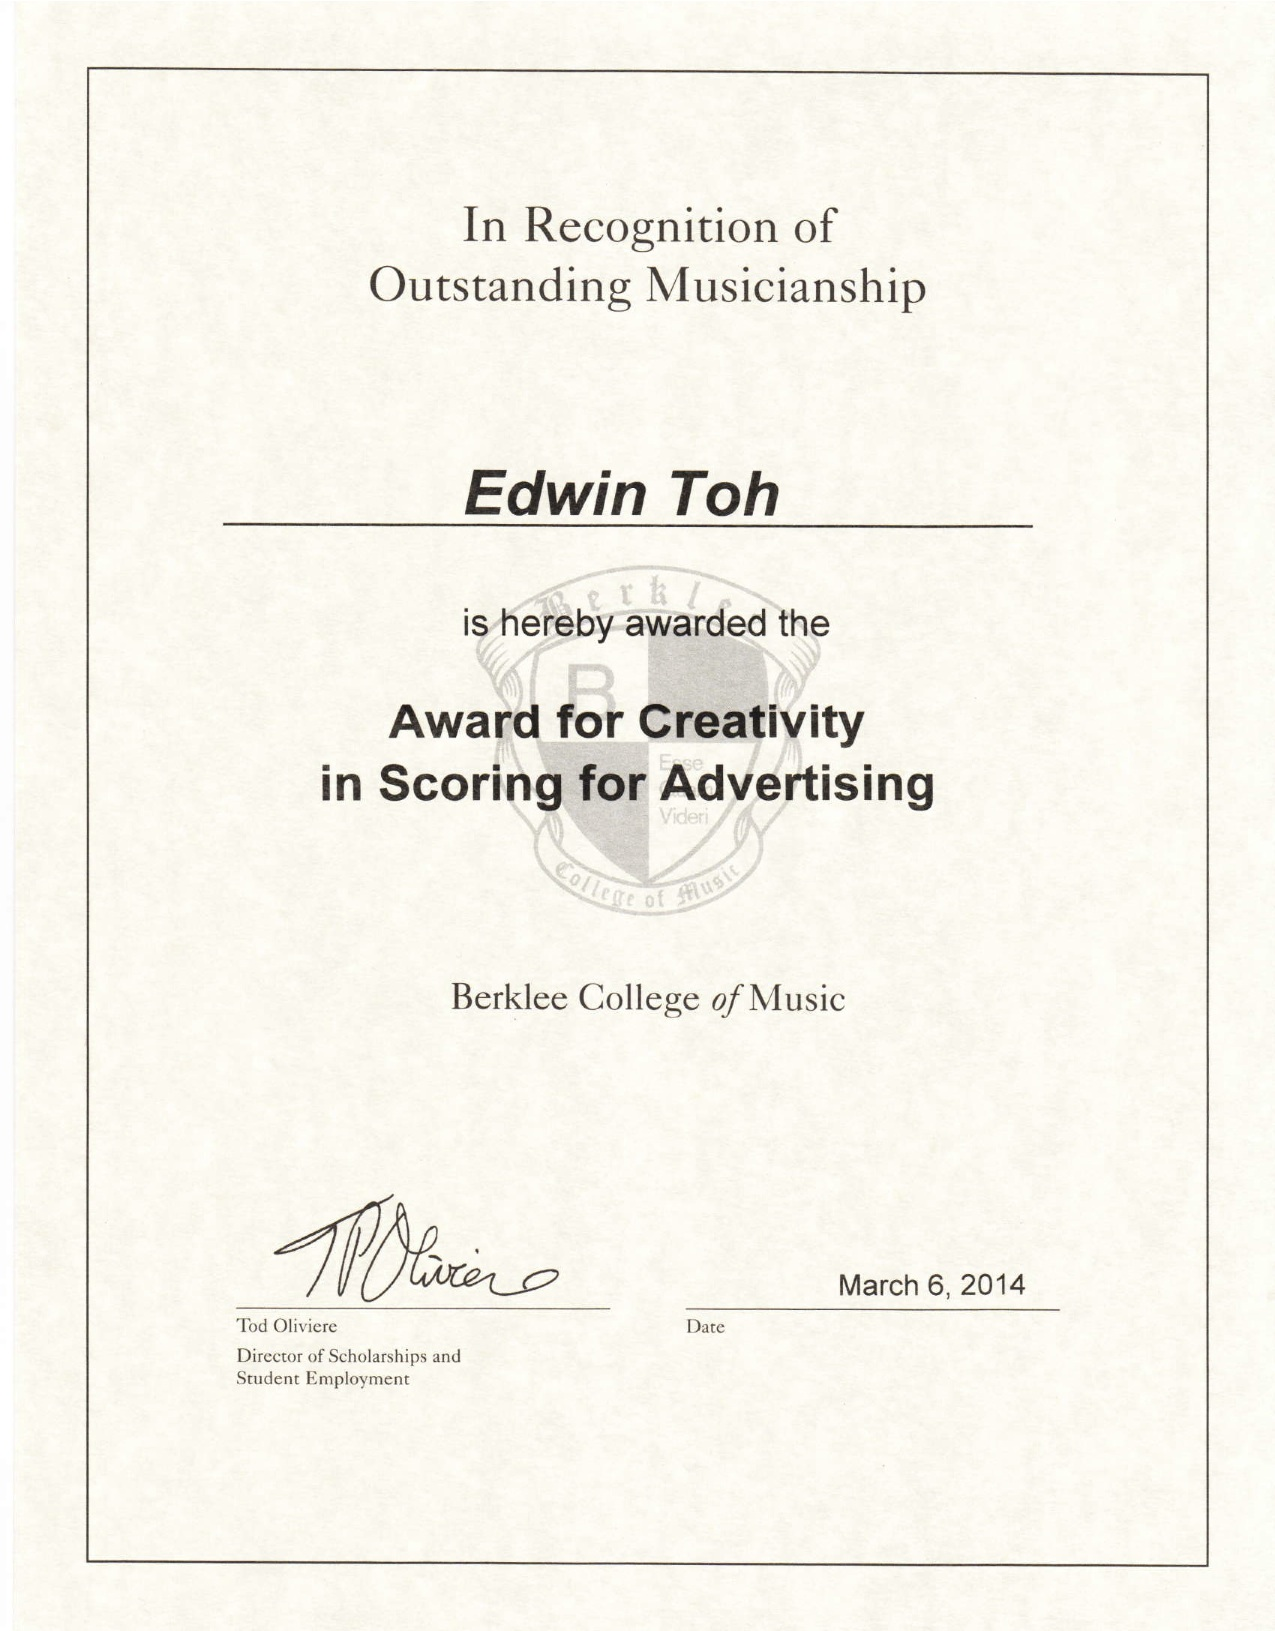 Award for Creativity in Scoring for Advertising